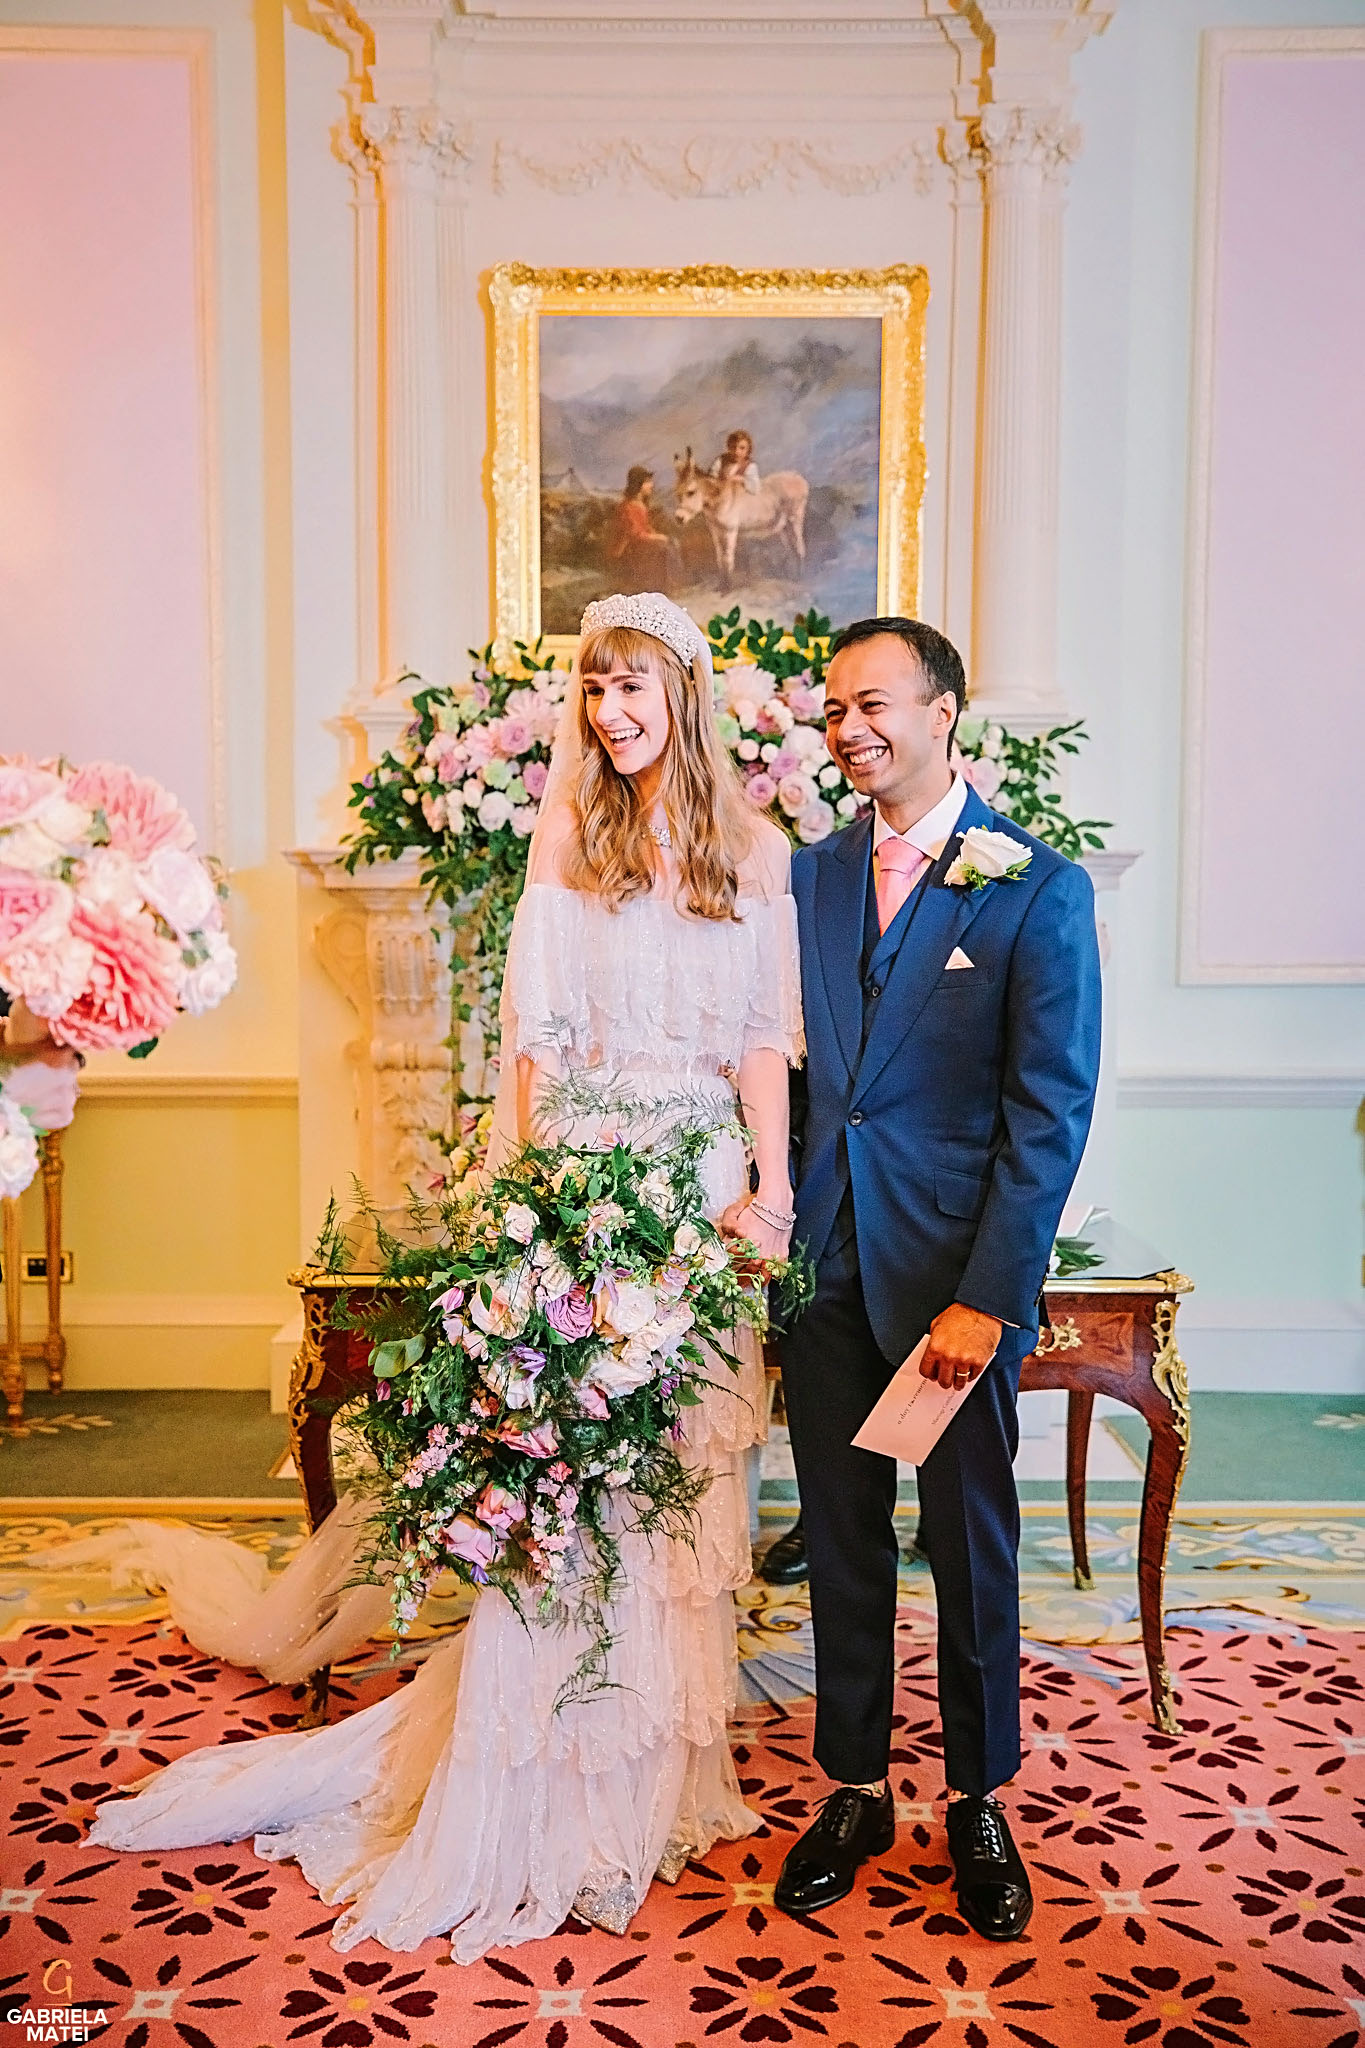 Gorgeous wedding couple in The Music Room at The Ritz hotel in London